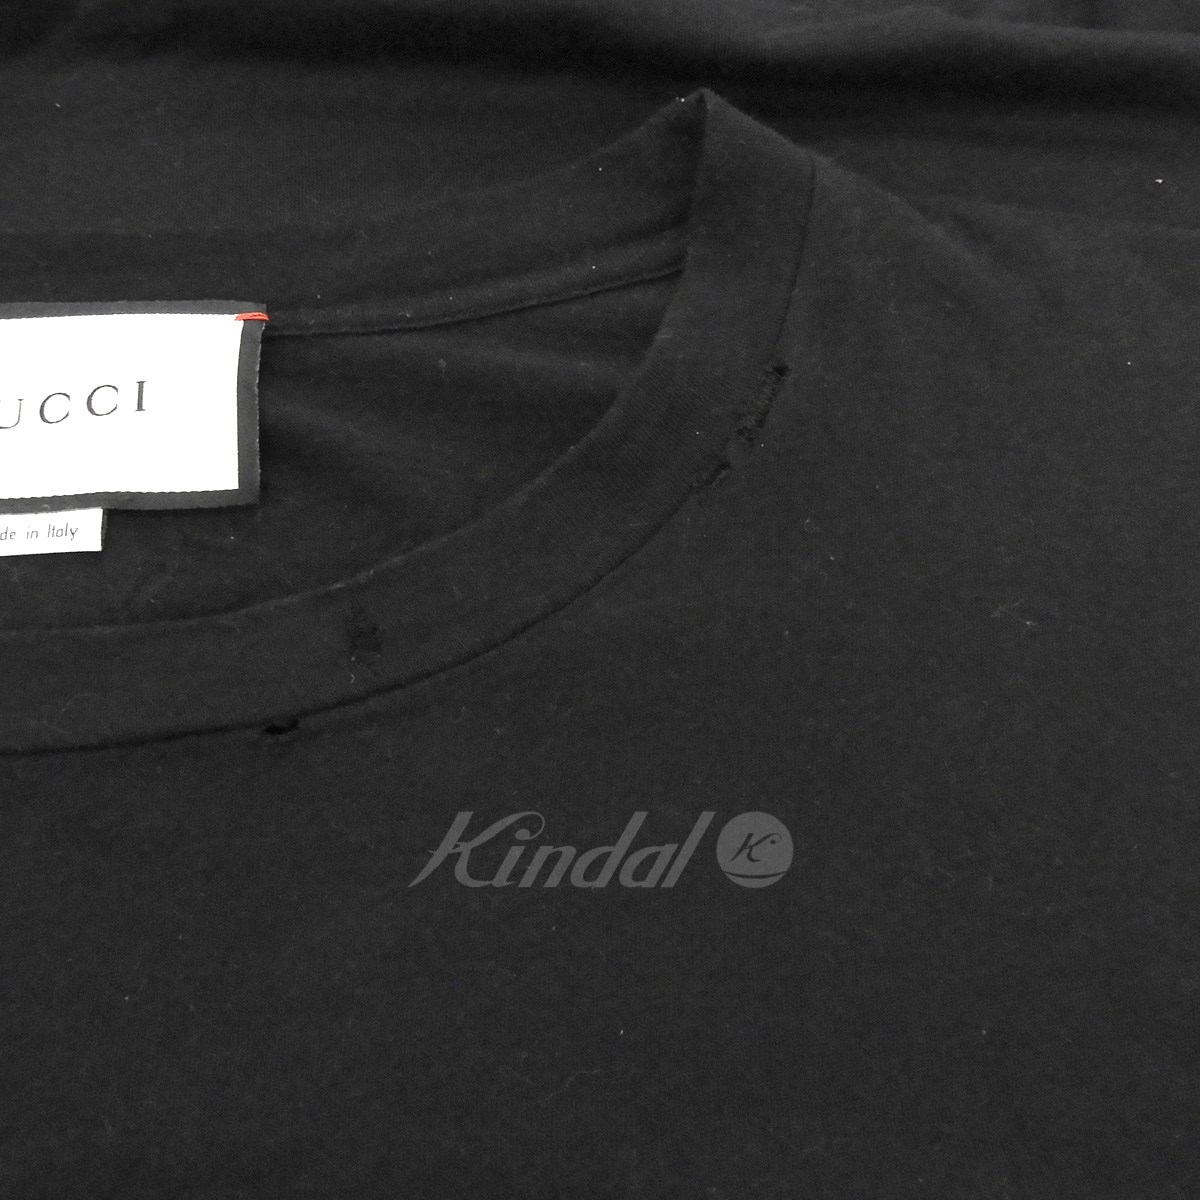 50adea479 GUCCI 2017SS flower embroidery old logo vintage processing T-shirt black  size: M (Gucci)